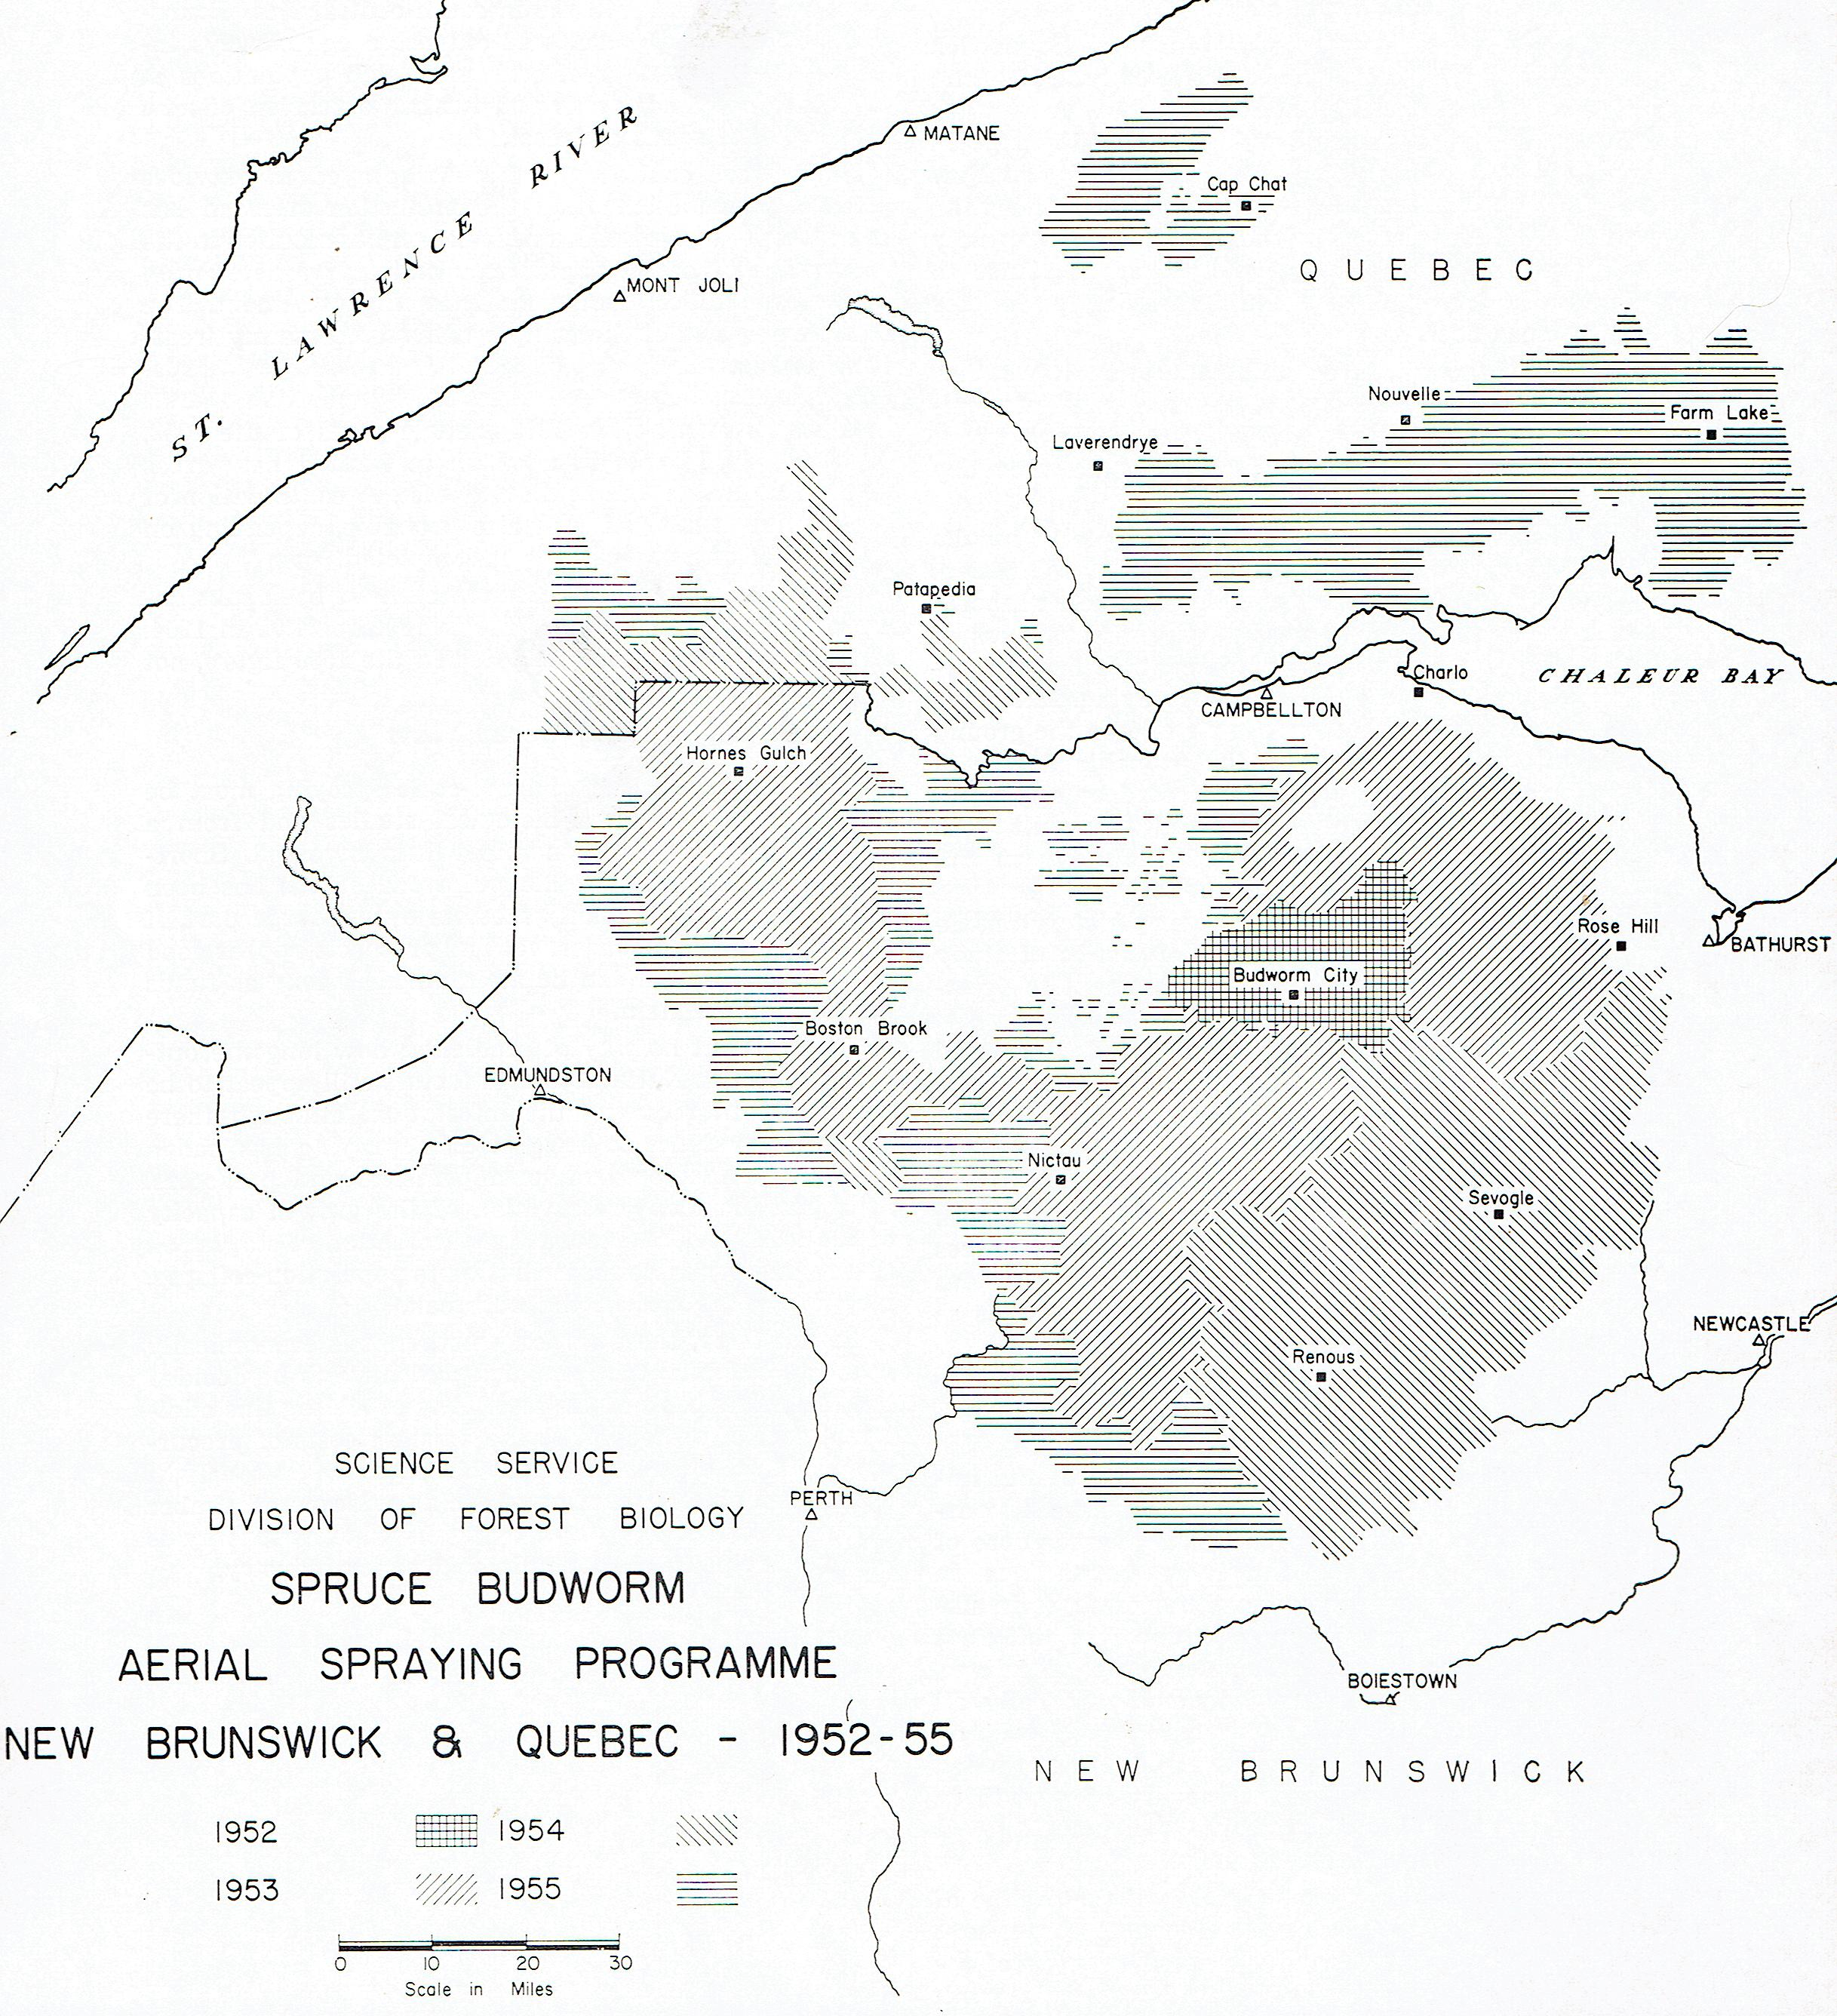 This image maps the extent of the spray areas in New Brunswick and Quebec (but not Maine) in 1954, and shows the locations of the airstrips used. The area sprayed in Quebec is only a small area south and west of Patapedia.